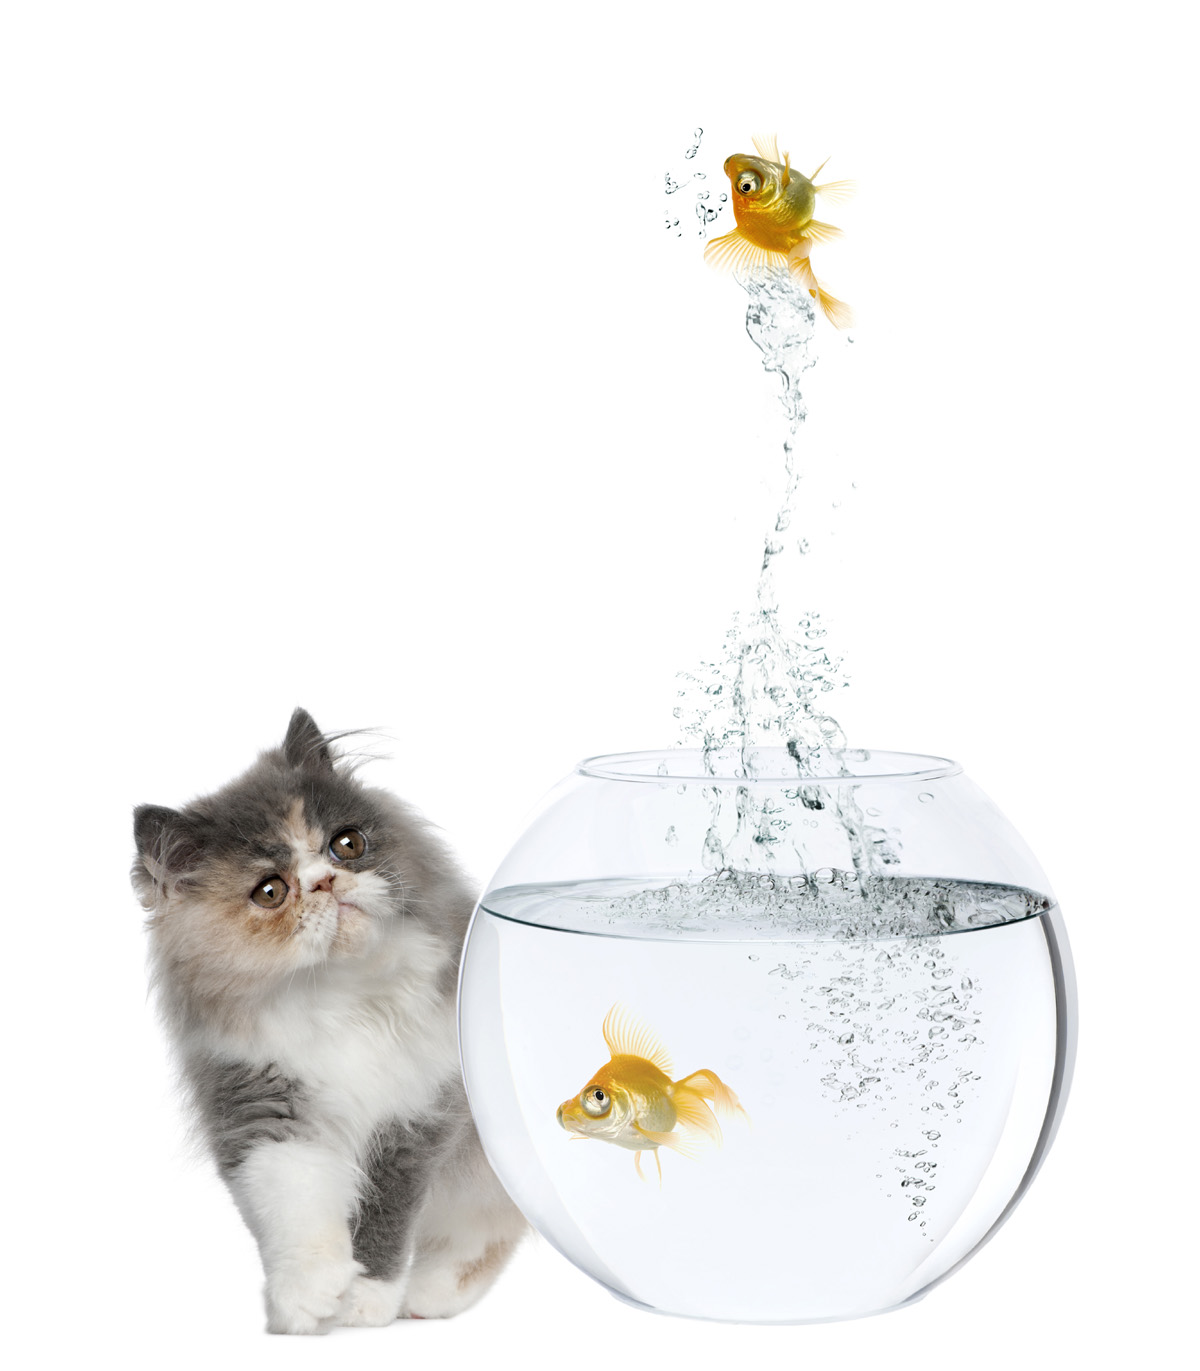 Cat and goldfish 3685